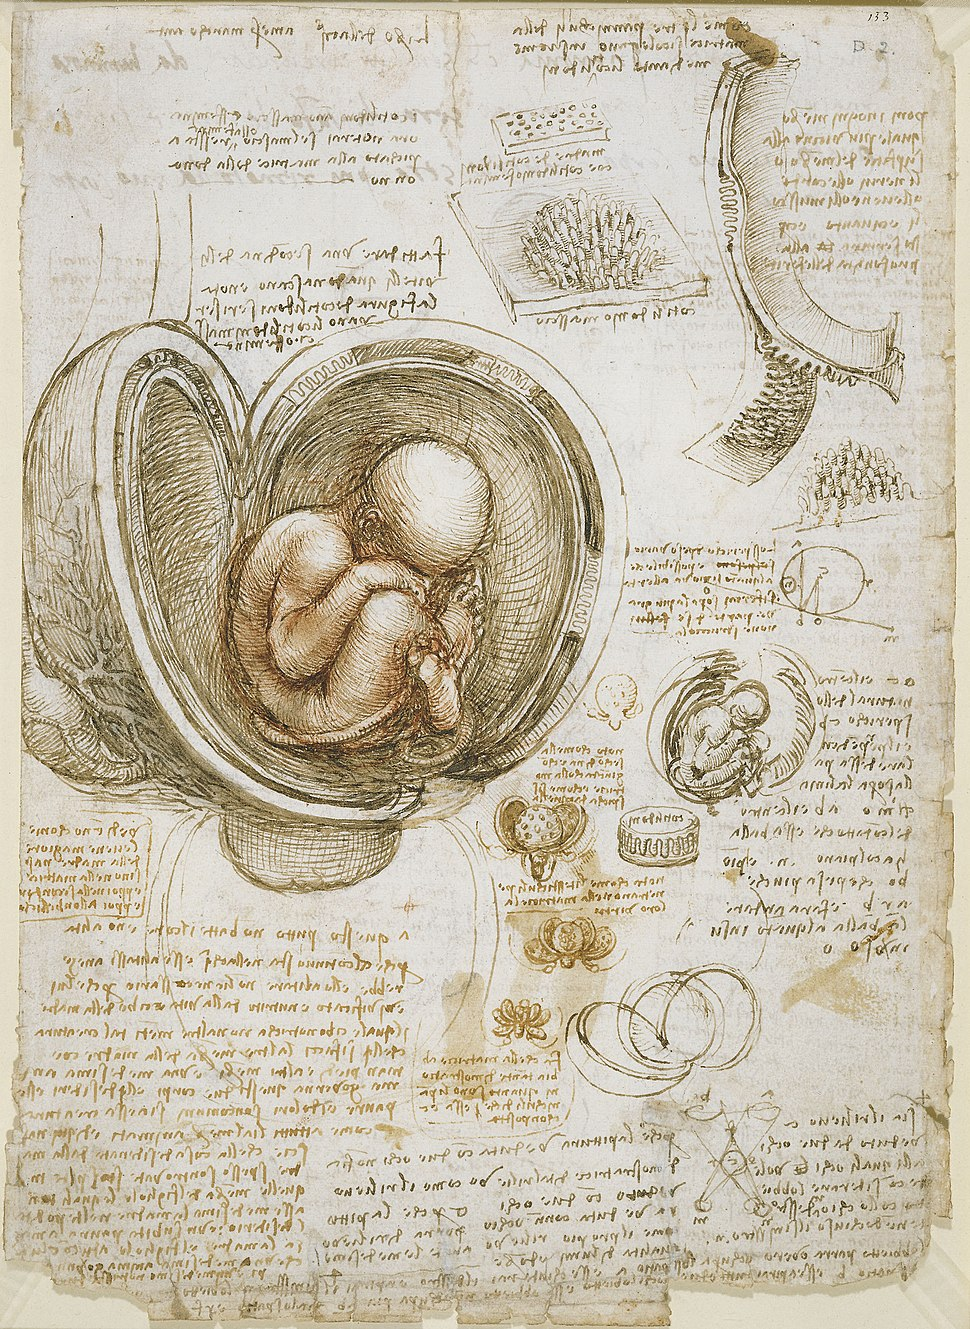 Leonardo da Vinci - Studies of the foetus in the womb